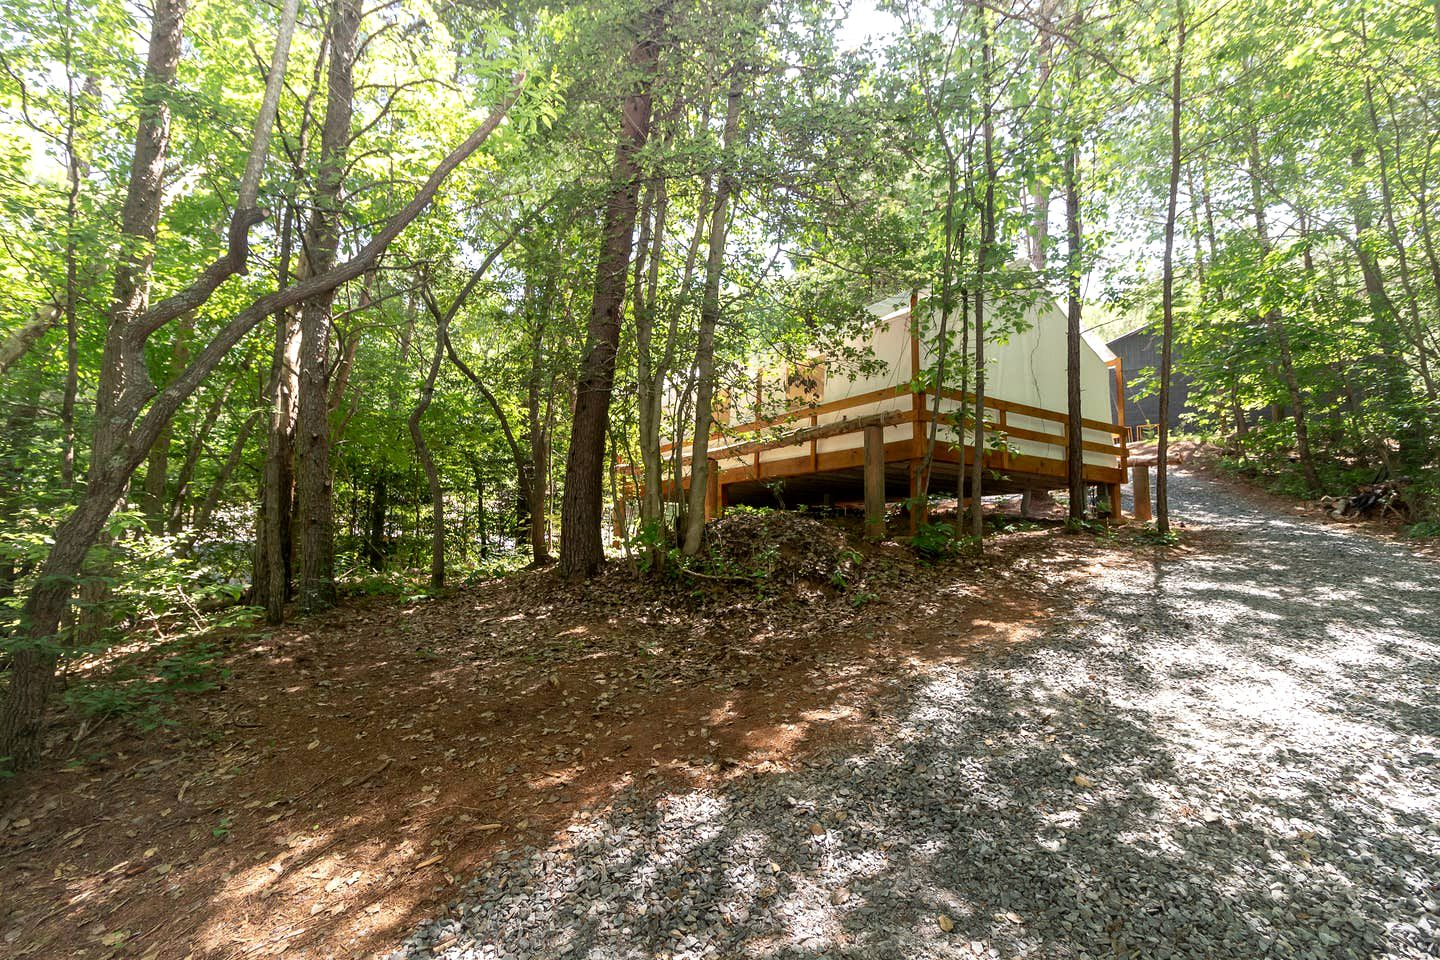 Safari Tents (Copperhill, Tennessee, United States)